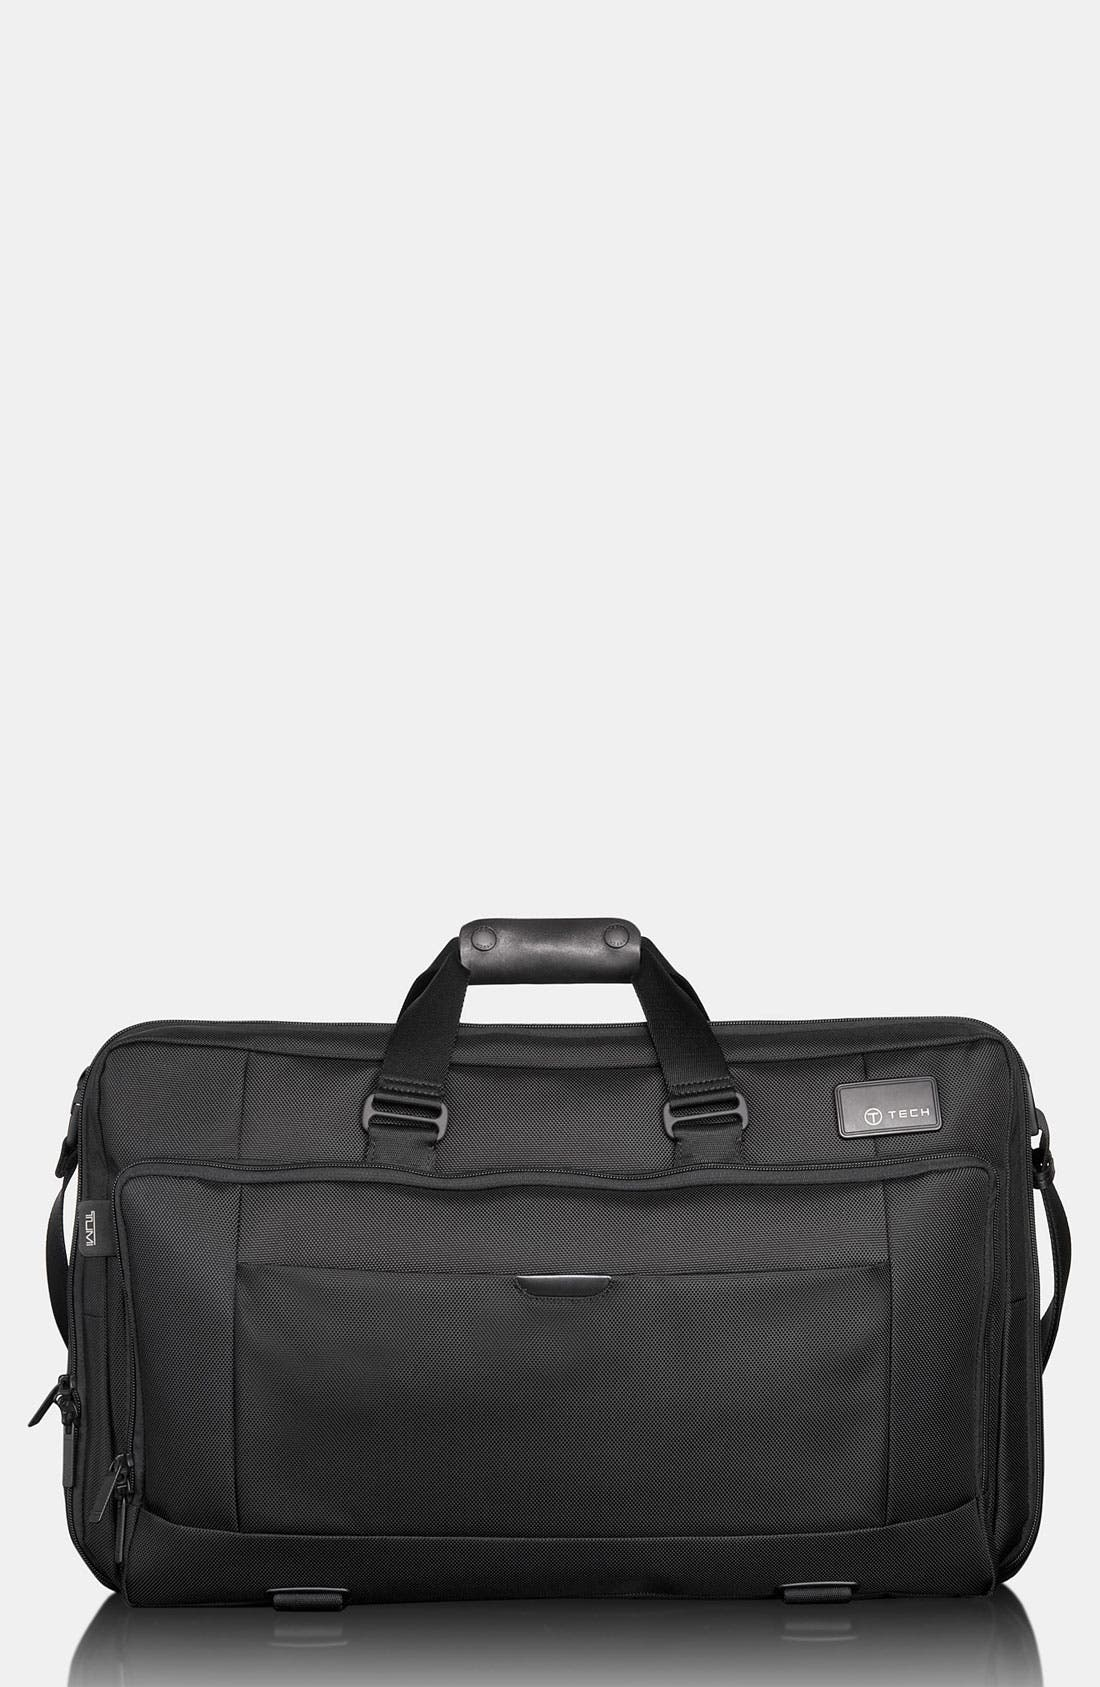 Alternate Image 1 Selected - Tumi 'T-Tech Network' Trifold Garment Bag